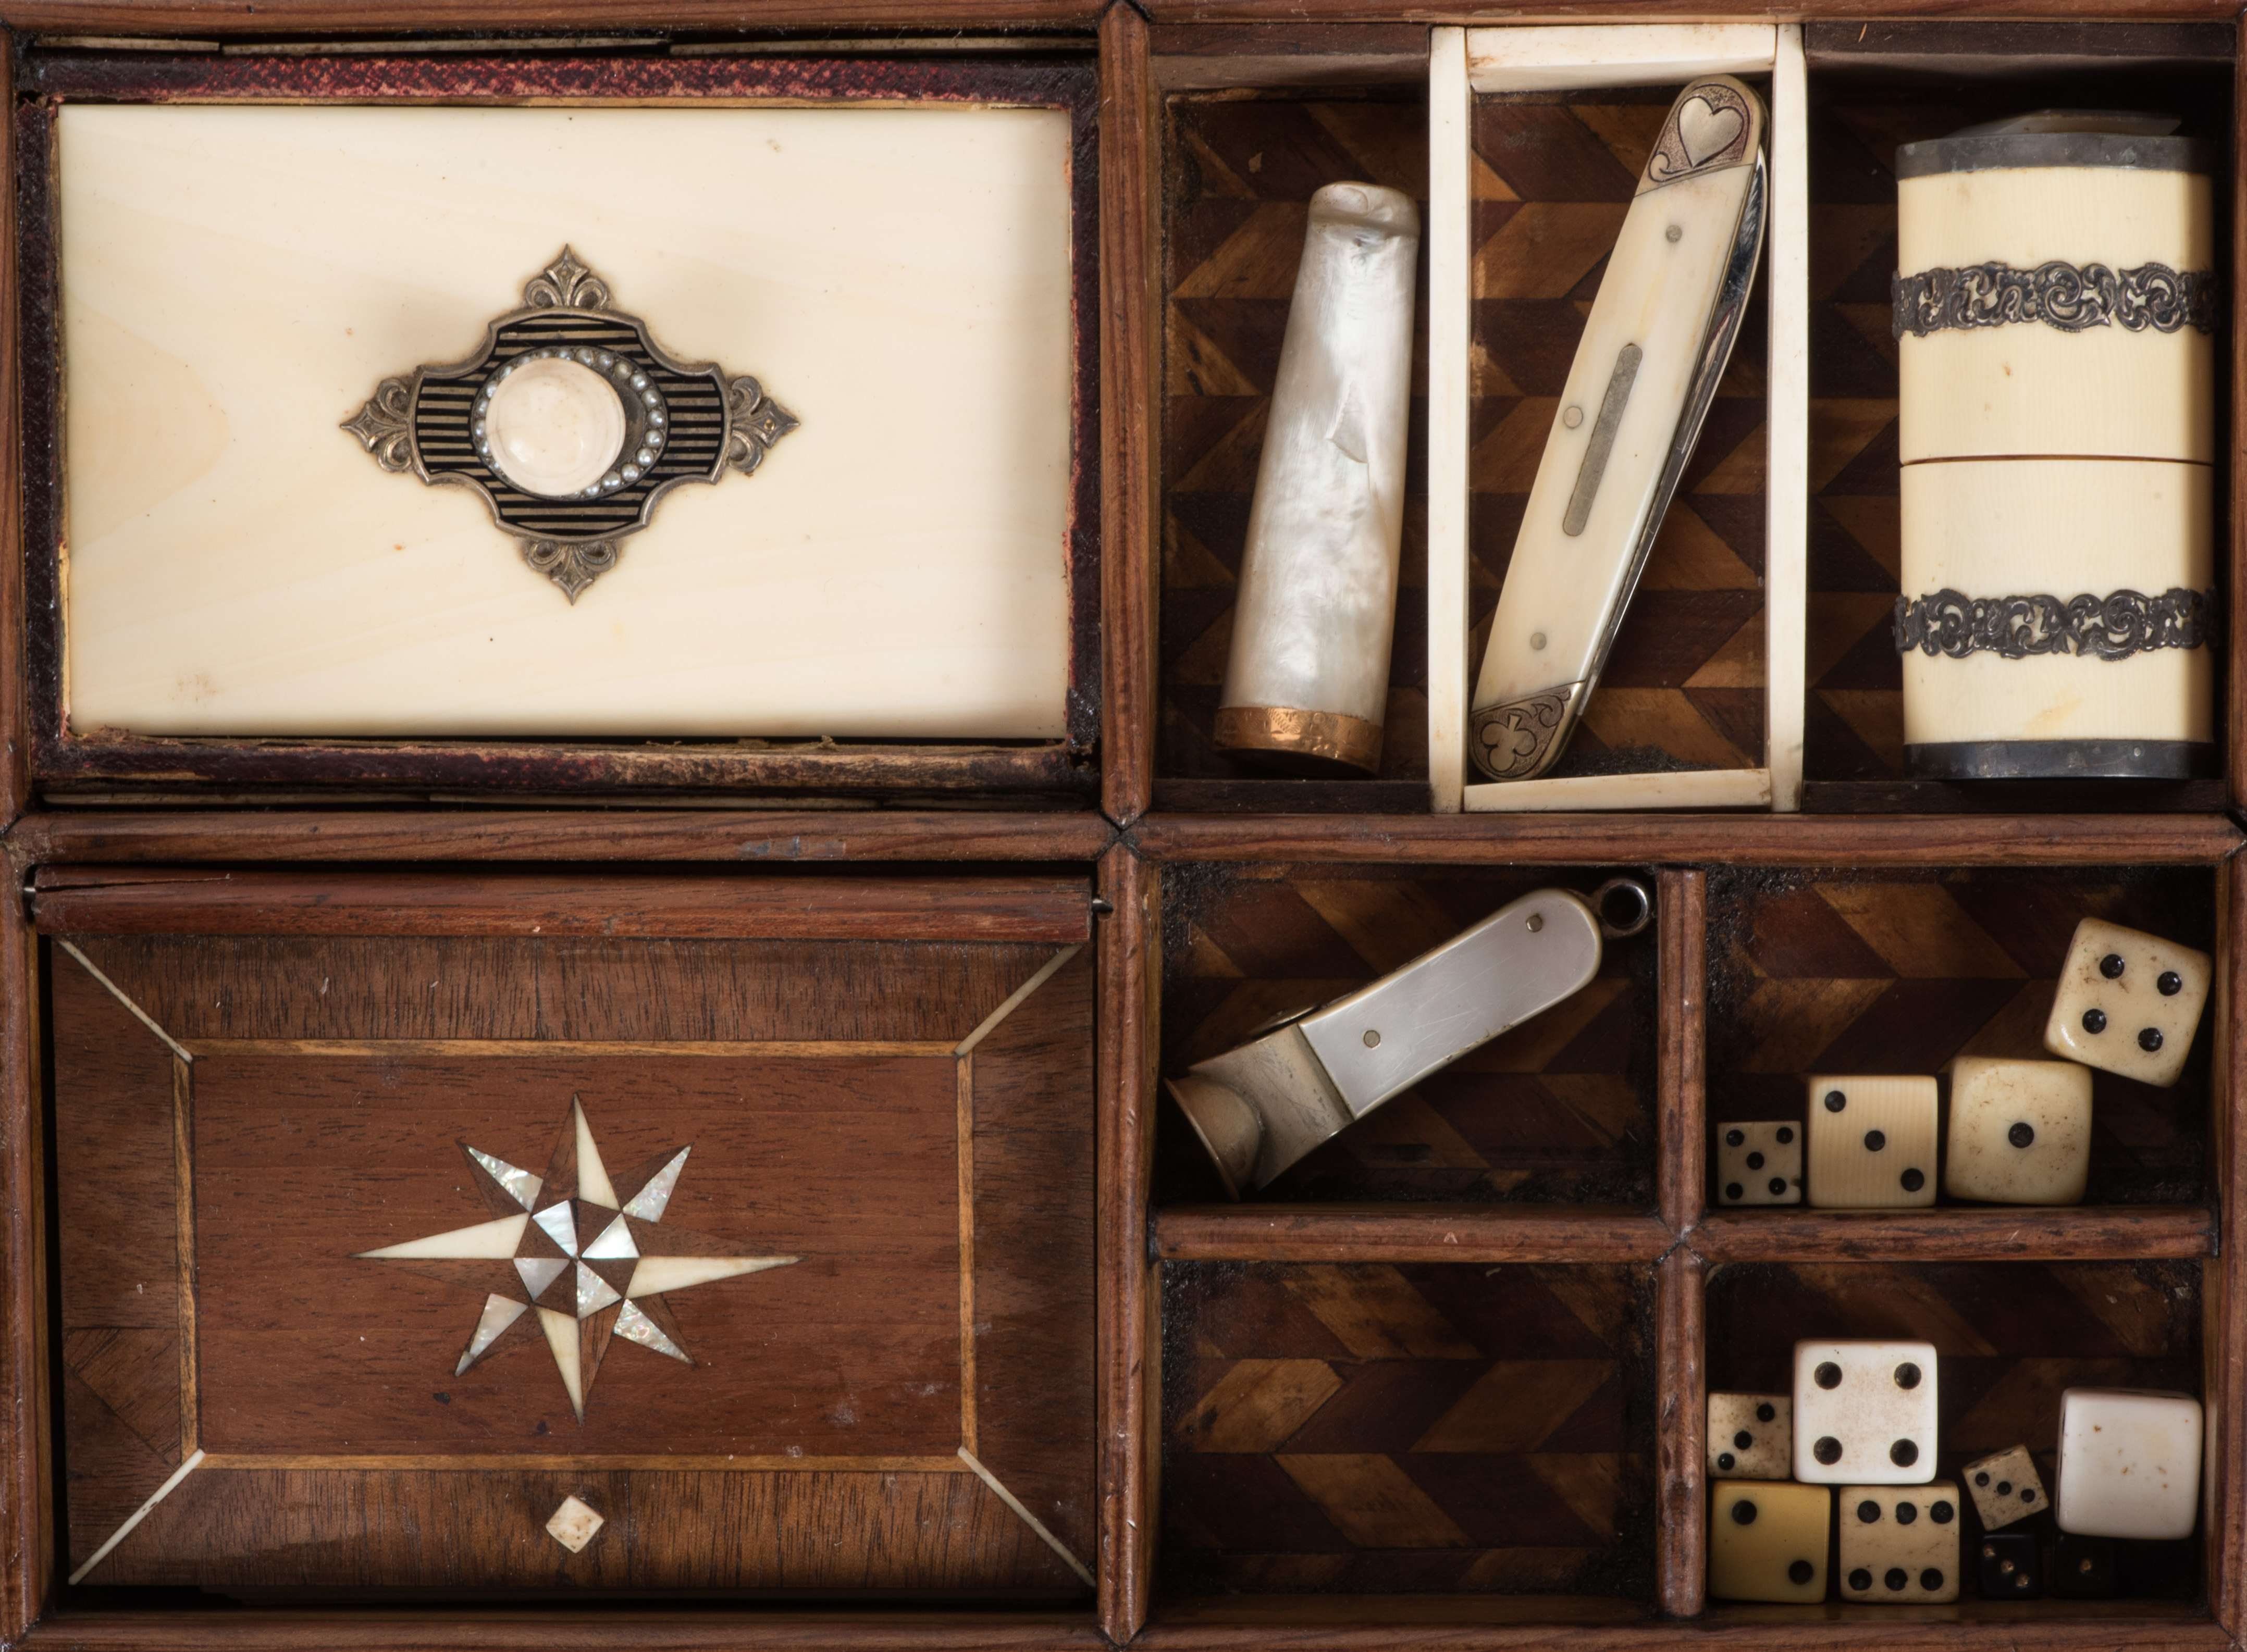 A circa 1880 American-made gambler's case, with several sets of mother-of-pearl chips, a pistol with a mother-of-pearl handle, a full set of playing cards, a cigar cutter with a mother-of-pearl handle, a two-bladed pocket knife with a scrimshawed ivory handle, an ivory dice cup, and miscellaneous dice.